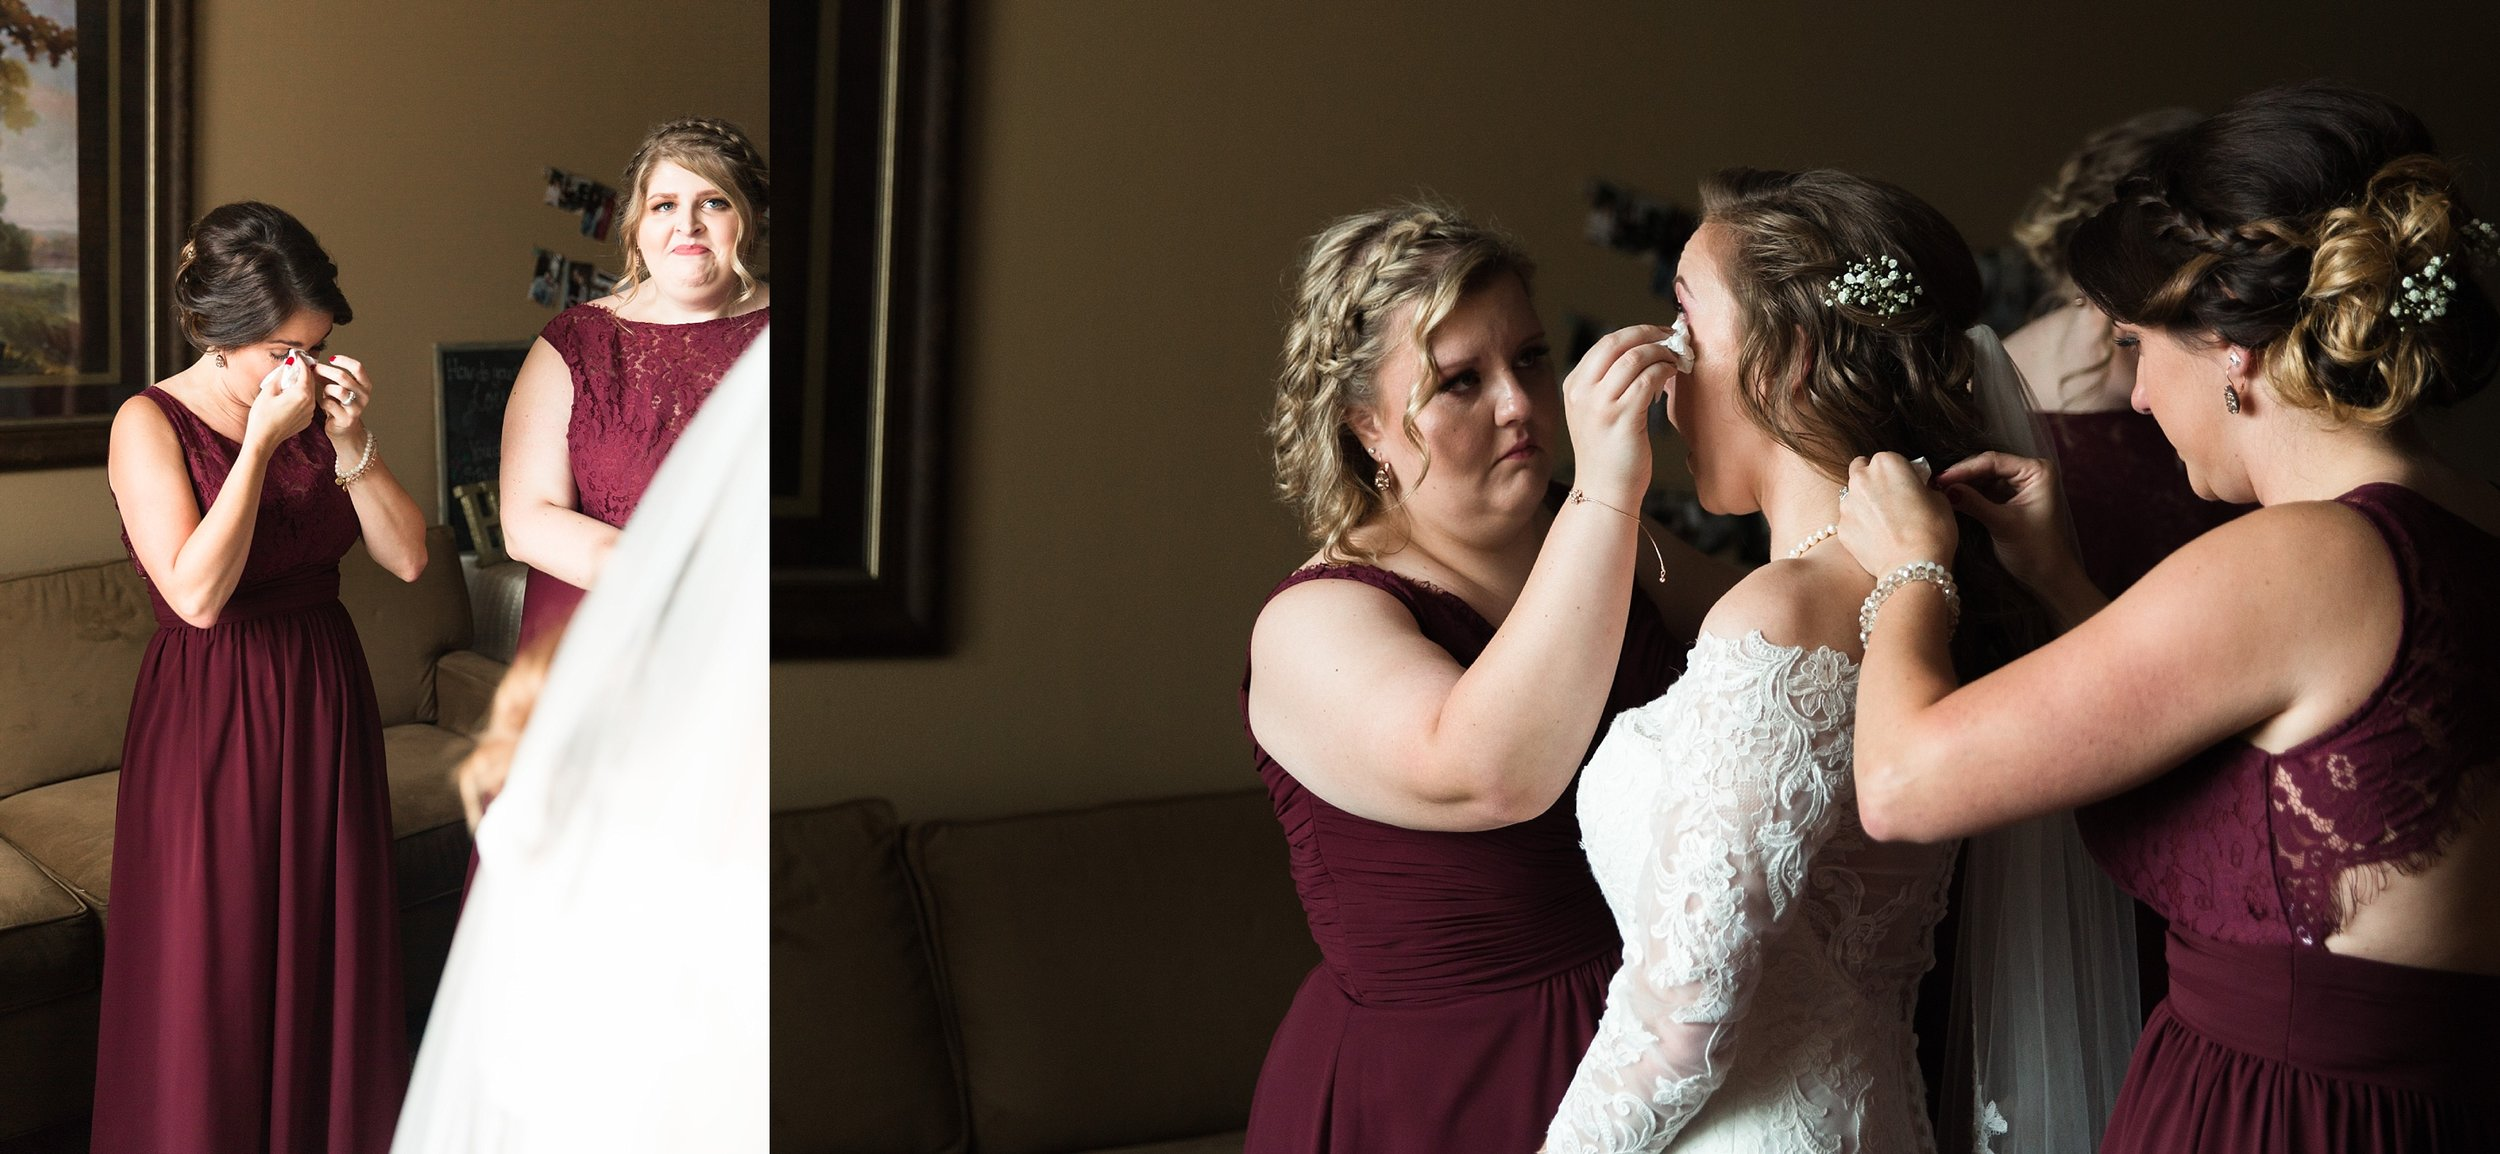 Greentree Wedding Rolla Missouri By: Jessica McBroom